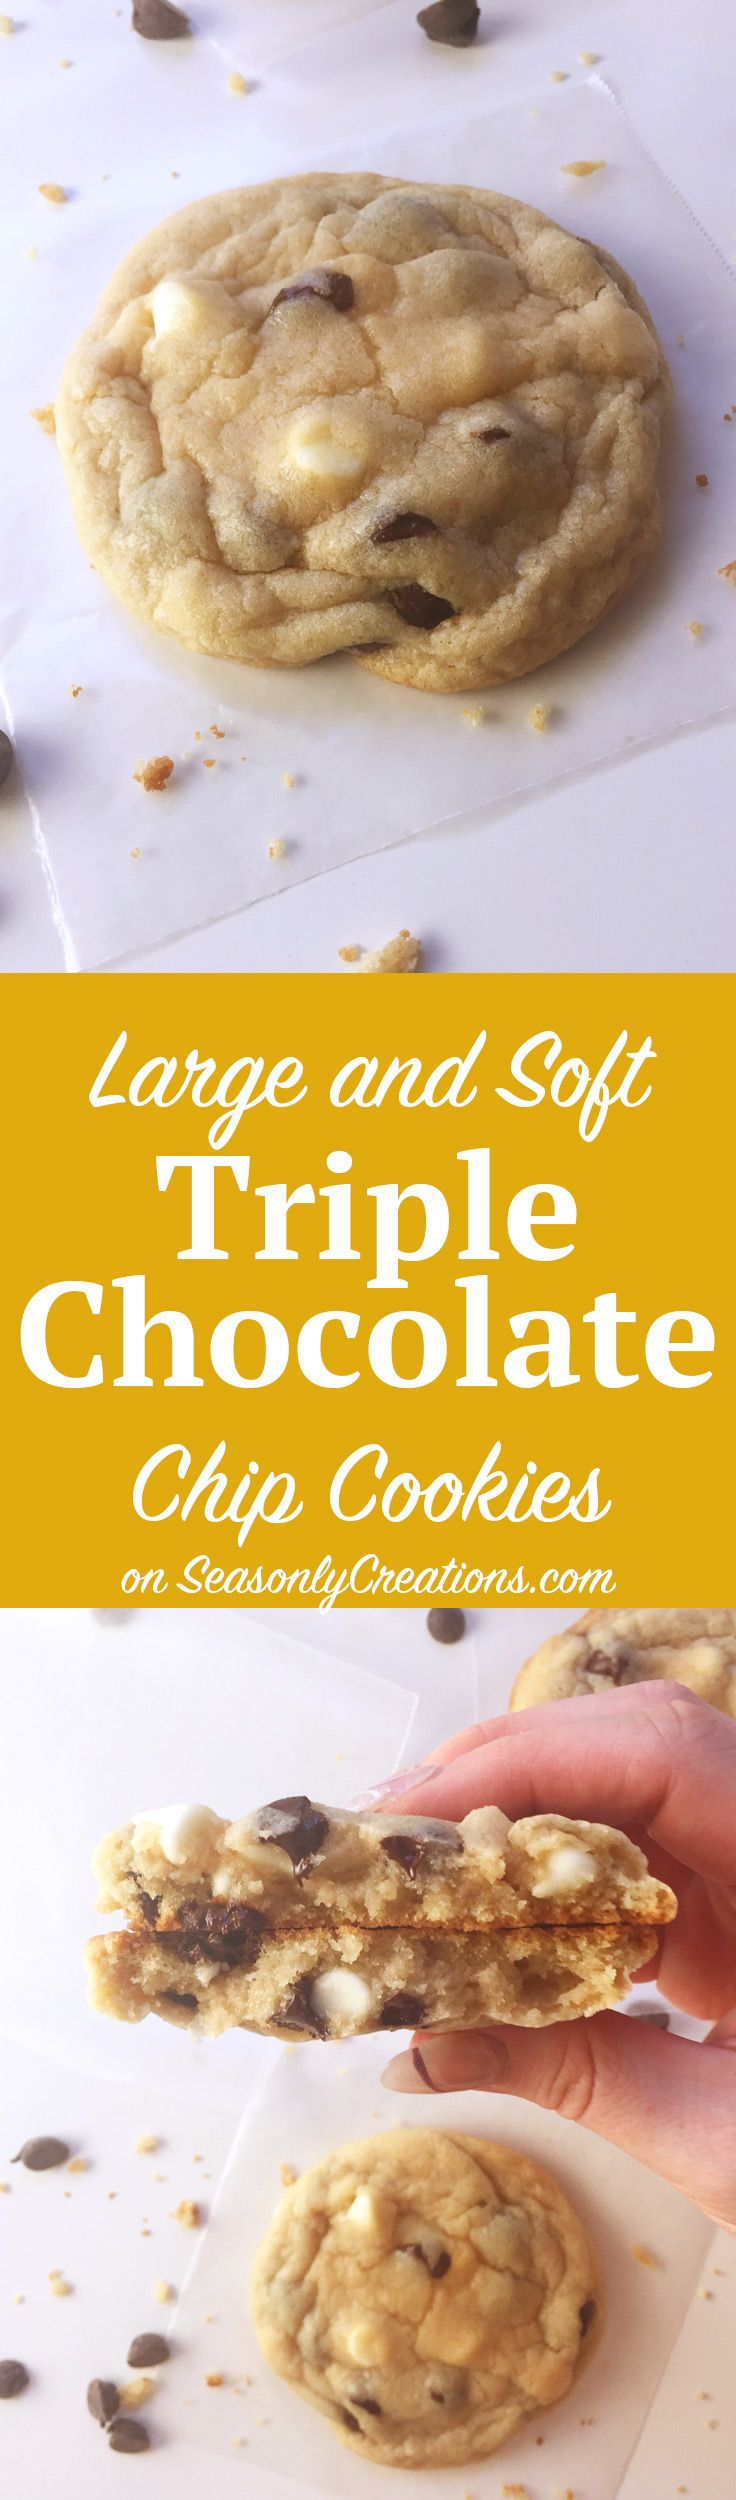 Soft and Large Triple Chocolate Chip Cookies. Large, soft, sweet, chocolatey pillows of delight! This chocolate chip cookie recipe features white chocolate, dark chocolate and milk chocolate, plenty of chips for everyone. PLUS, this cookie recipe is quick (only 25 minutes!) and easy (only one bowl needed!). Click through for the full recipe. | SeasonlyCreations.com | @SeasonlyBlog